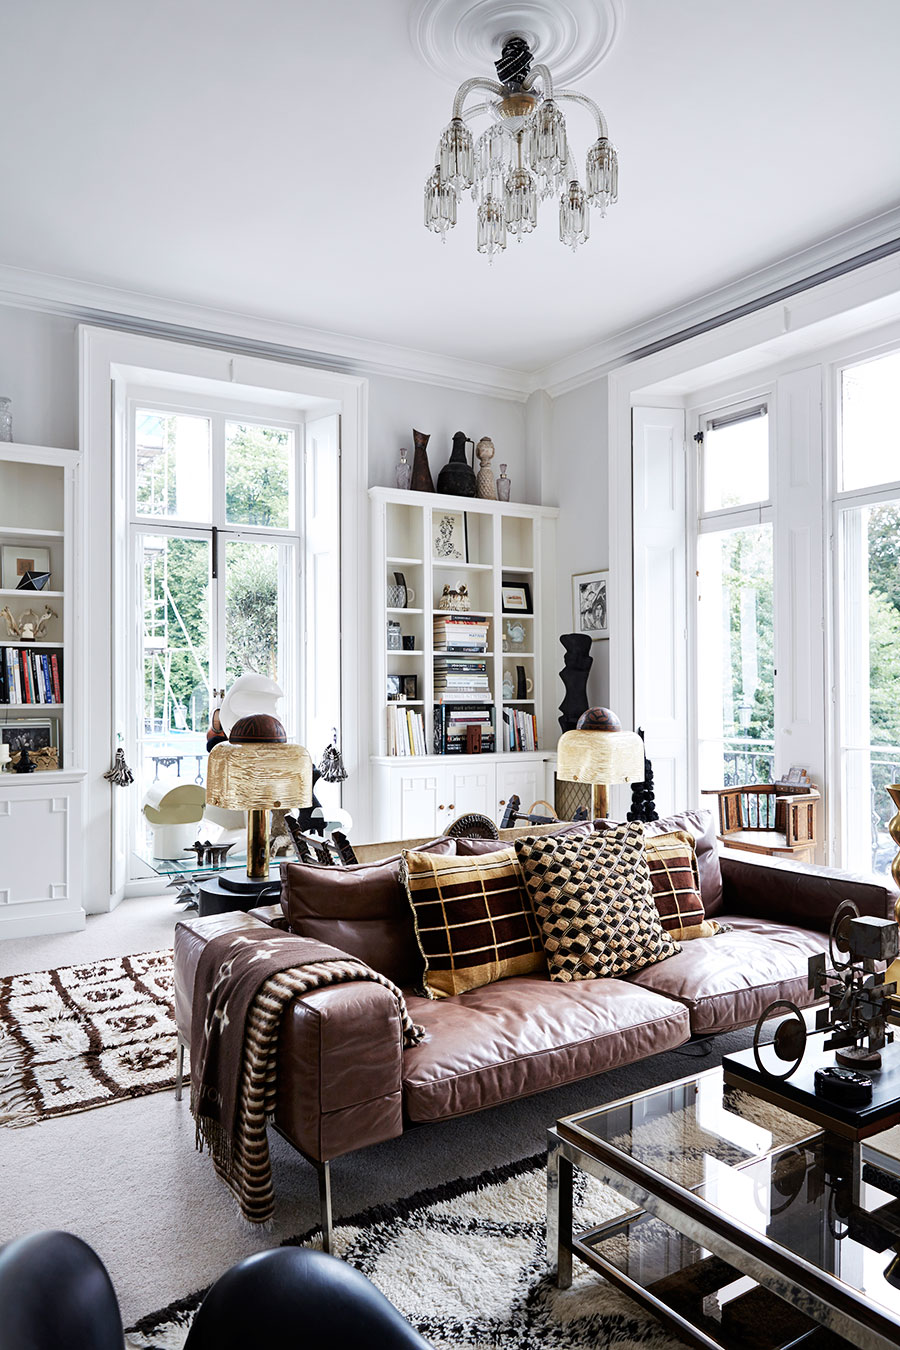 malene-birger-london-vardagsrum_livingroom_2